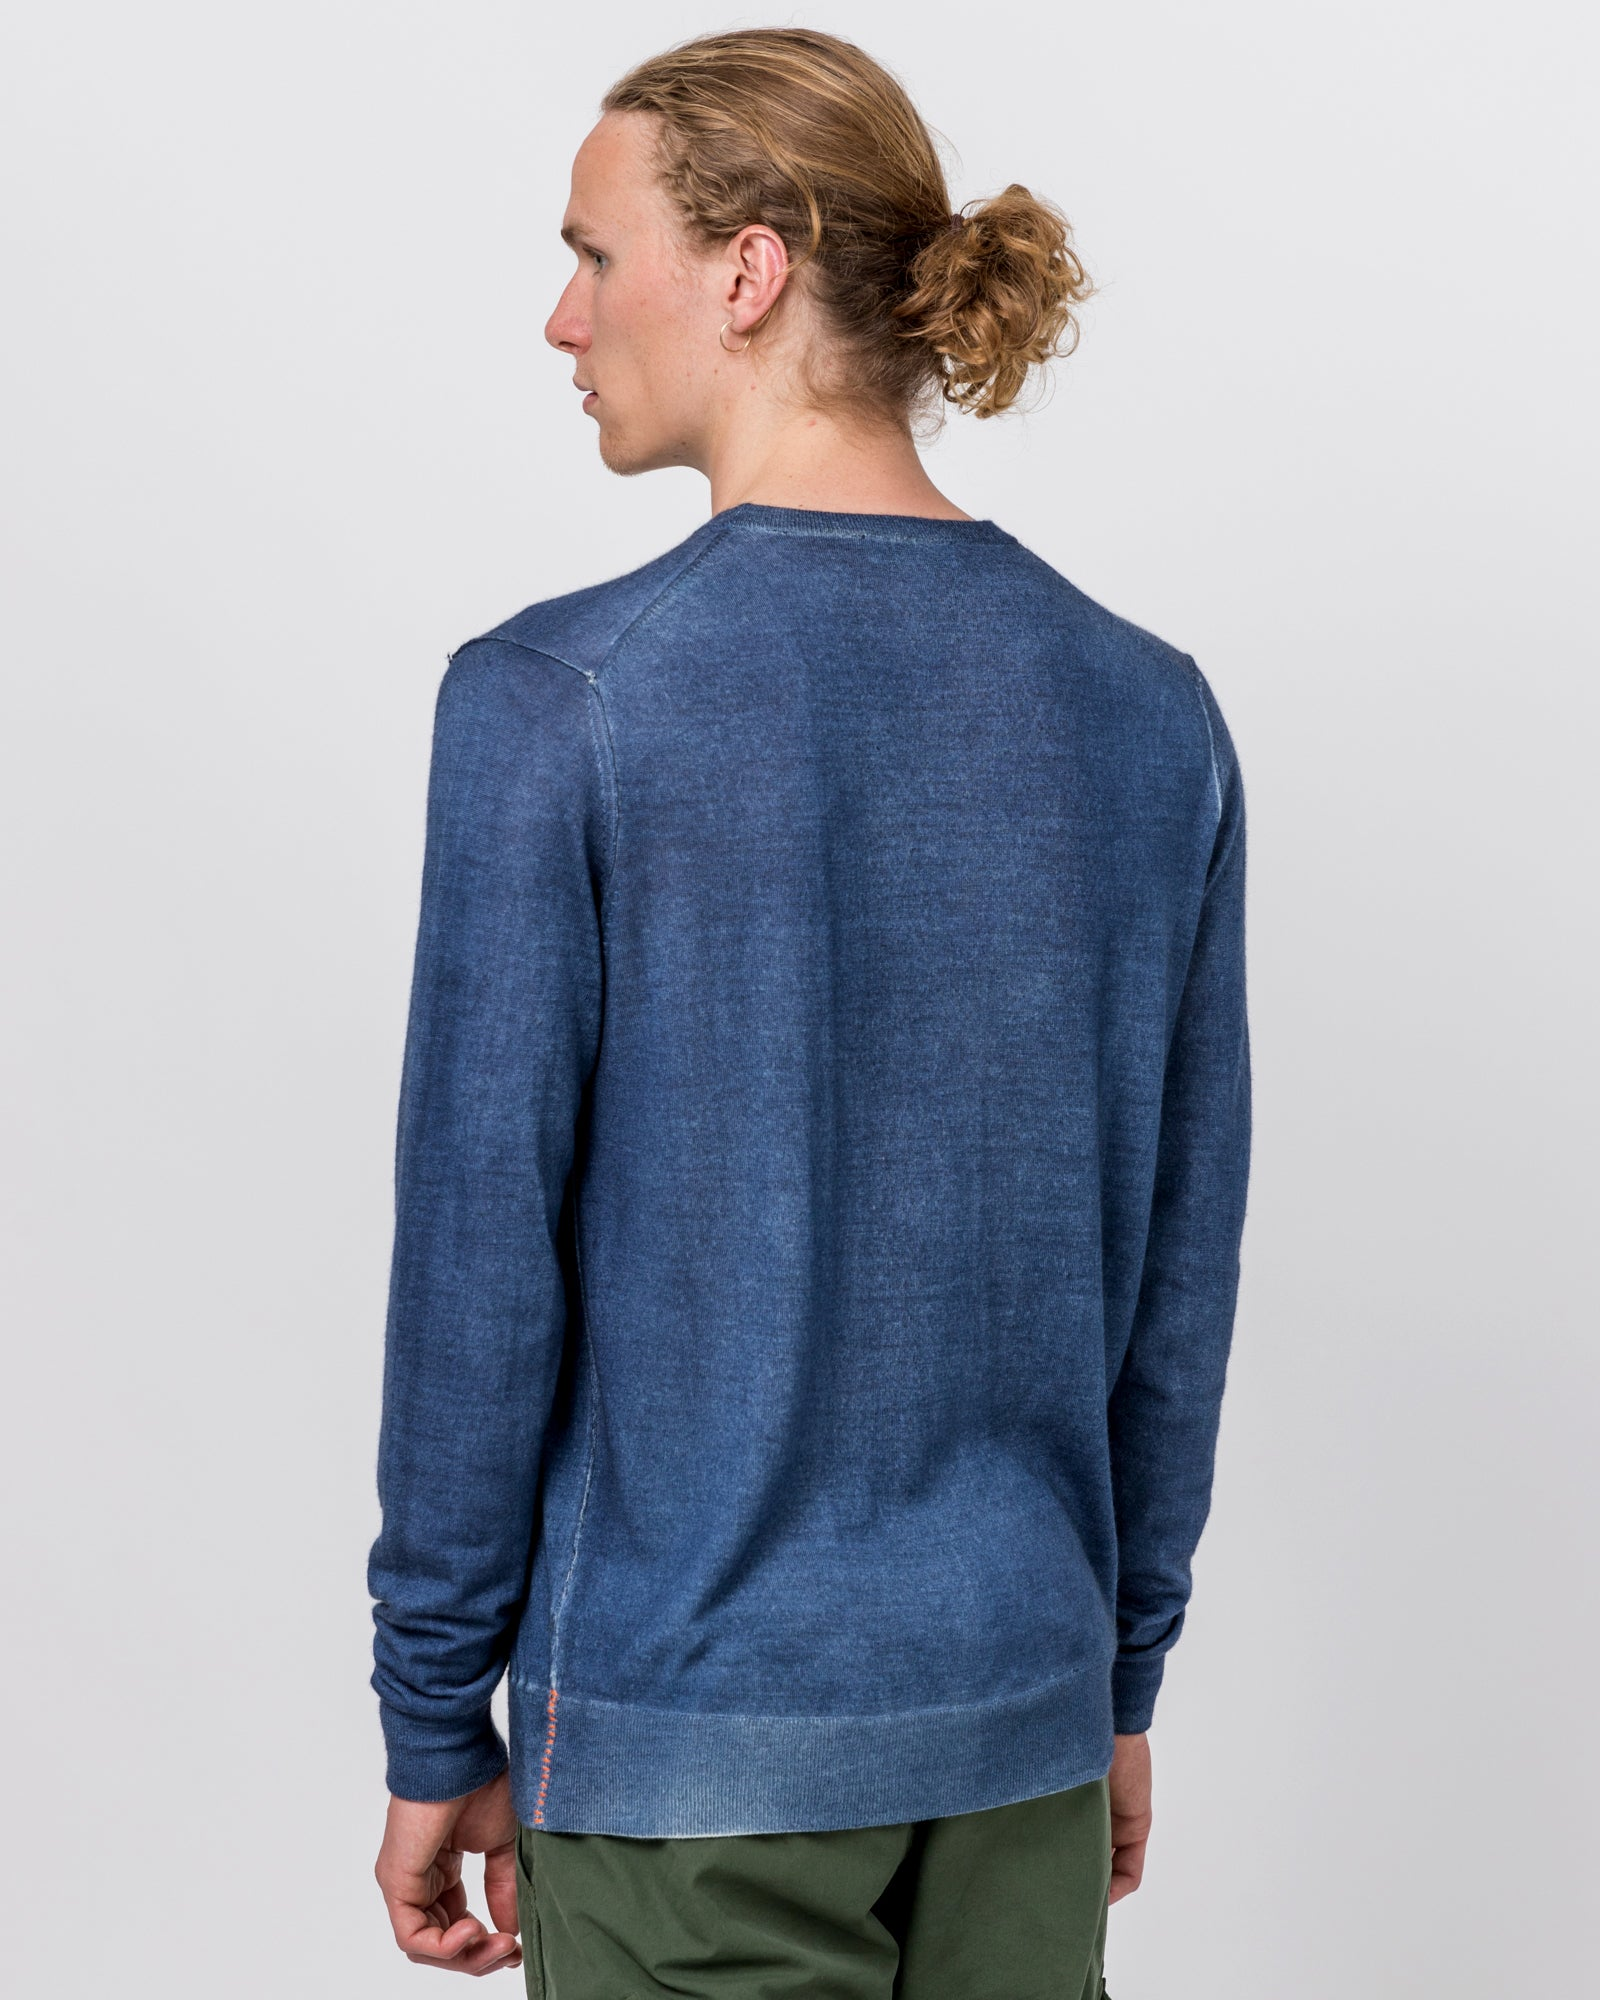 RG Exclusive Wool & Cashmere Crewneck in Blue